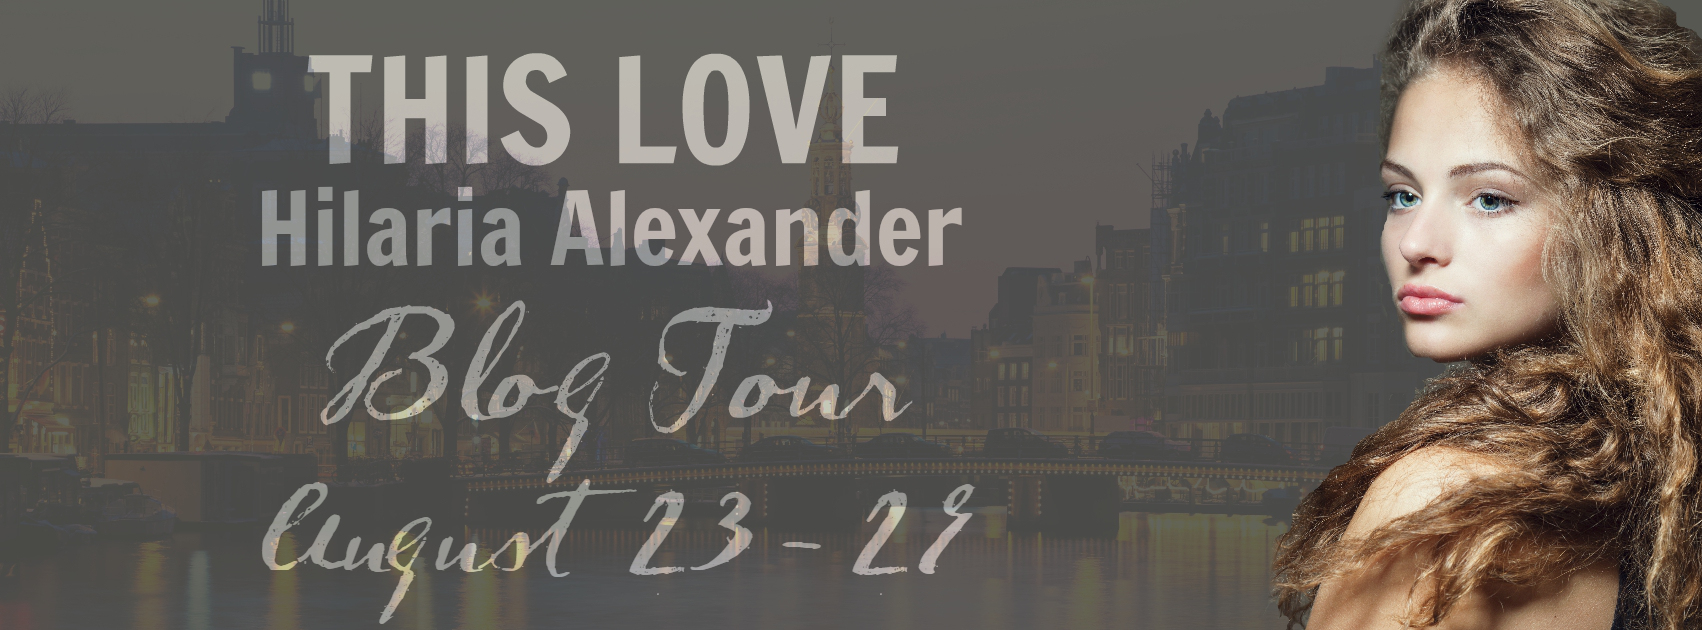 Blog Tour Stop! This Love by Hilaria Alexander